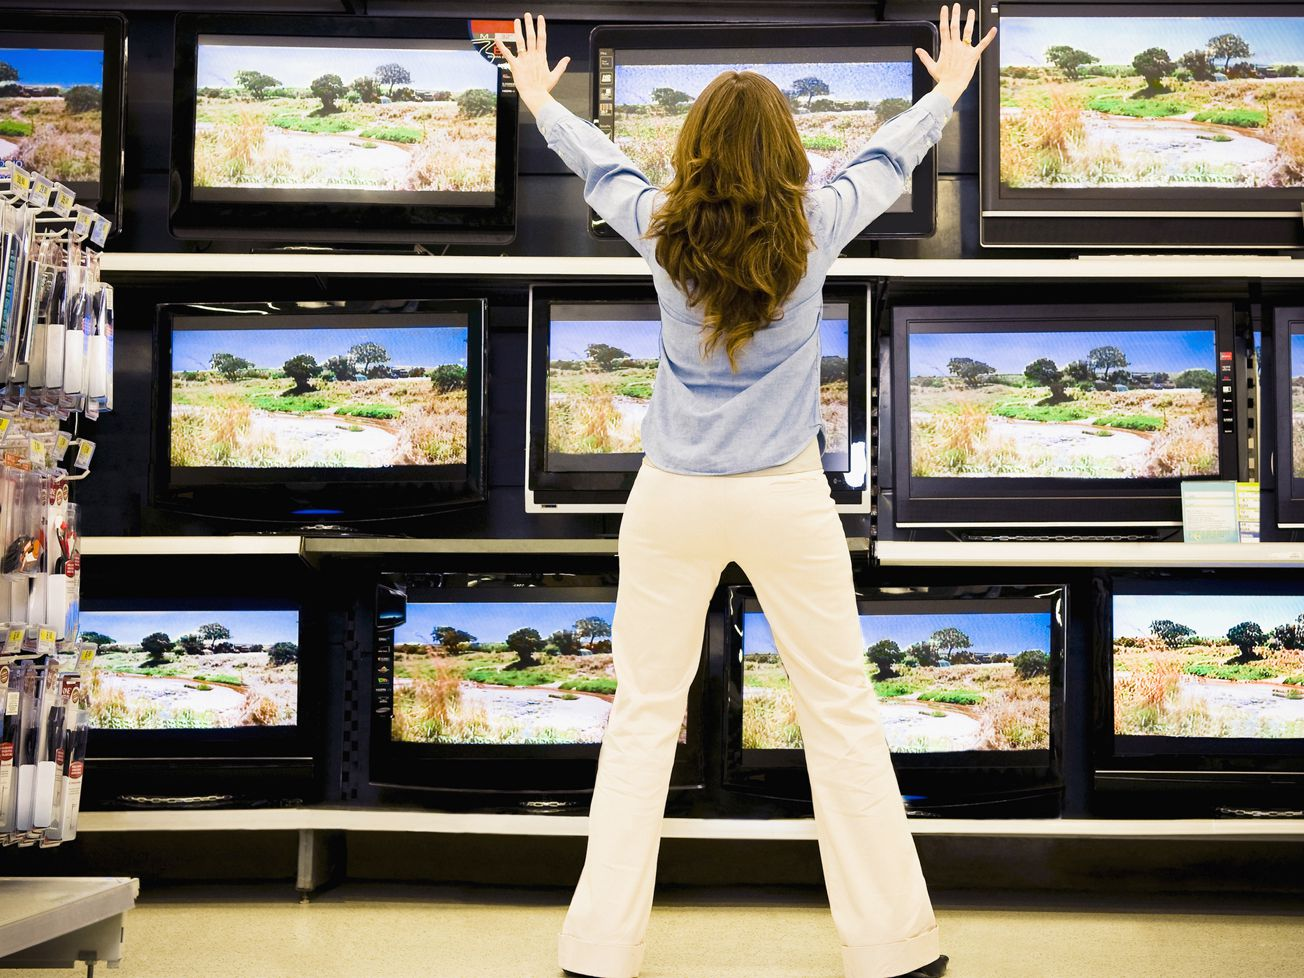 An Overview of TV Technologies